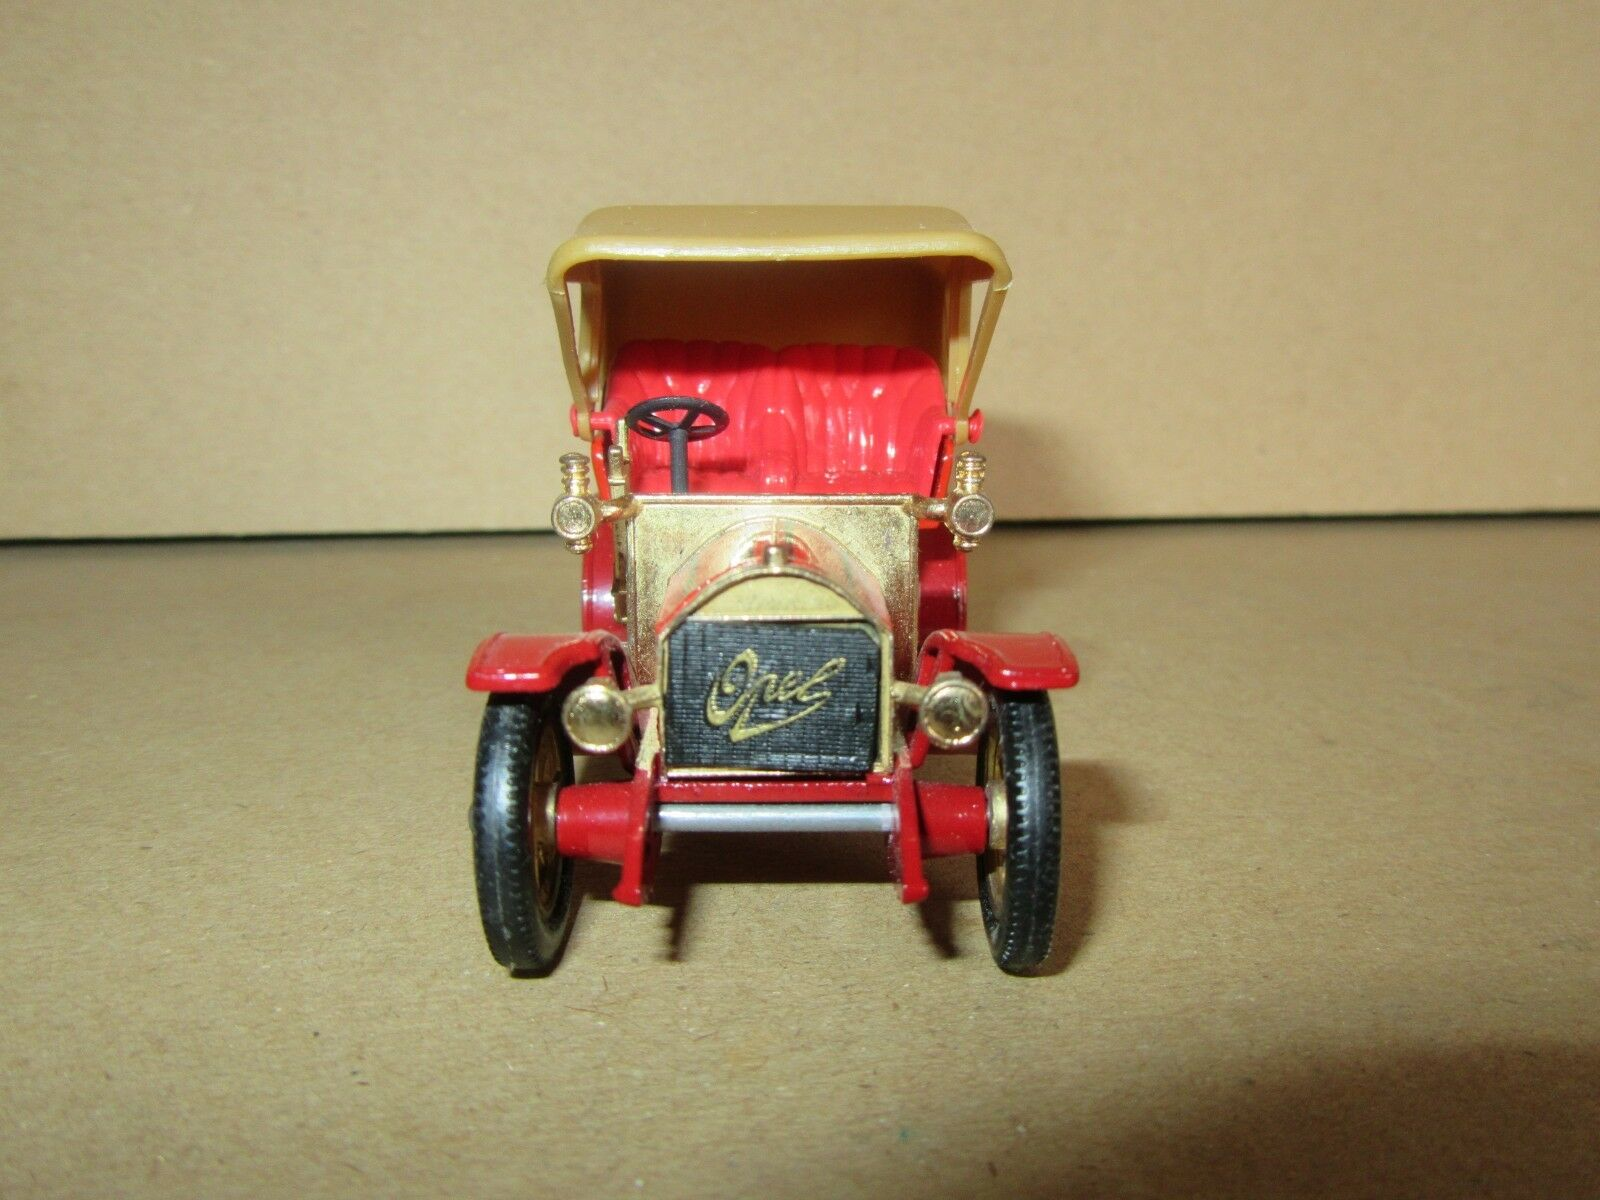 952H Rare Matchbox Edition Limited Limited Limited Opel Coupé 1909 Red 0d9072